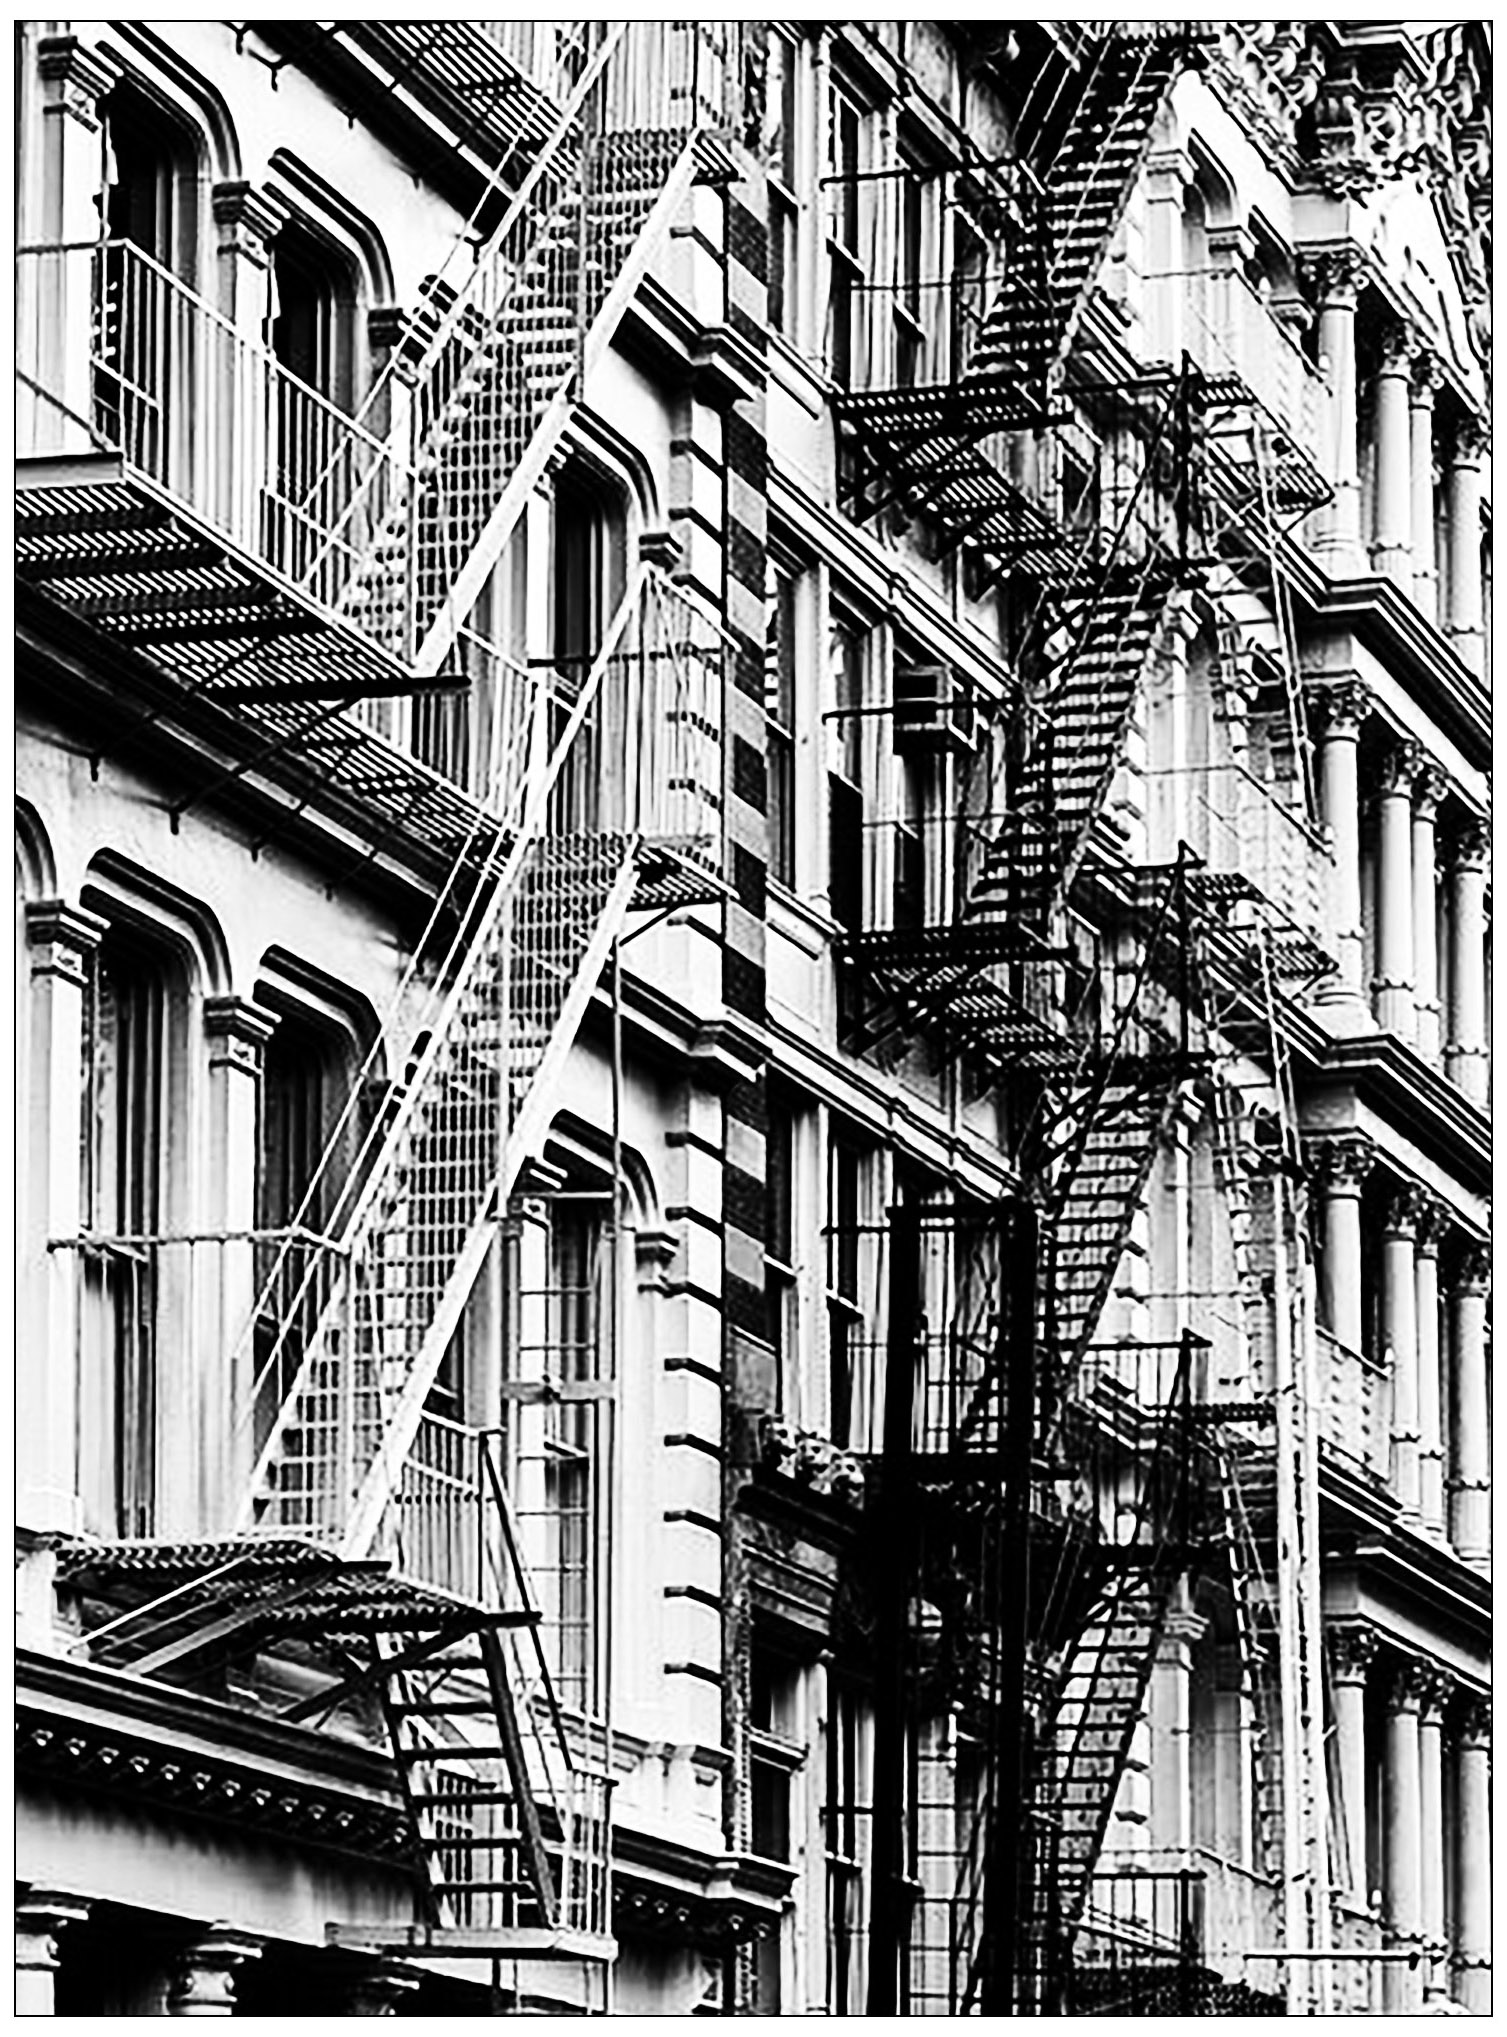 Coloring adult typical new york stairs in china town